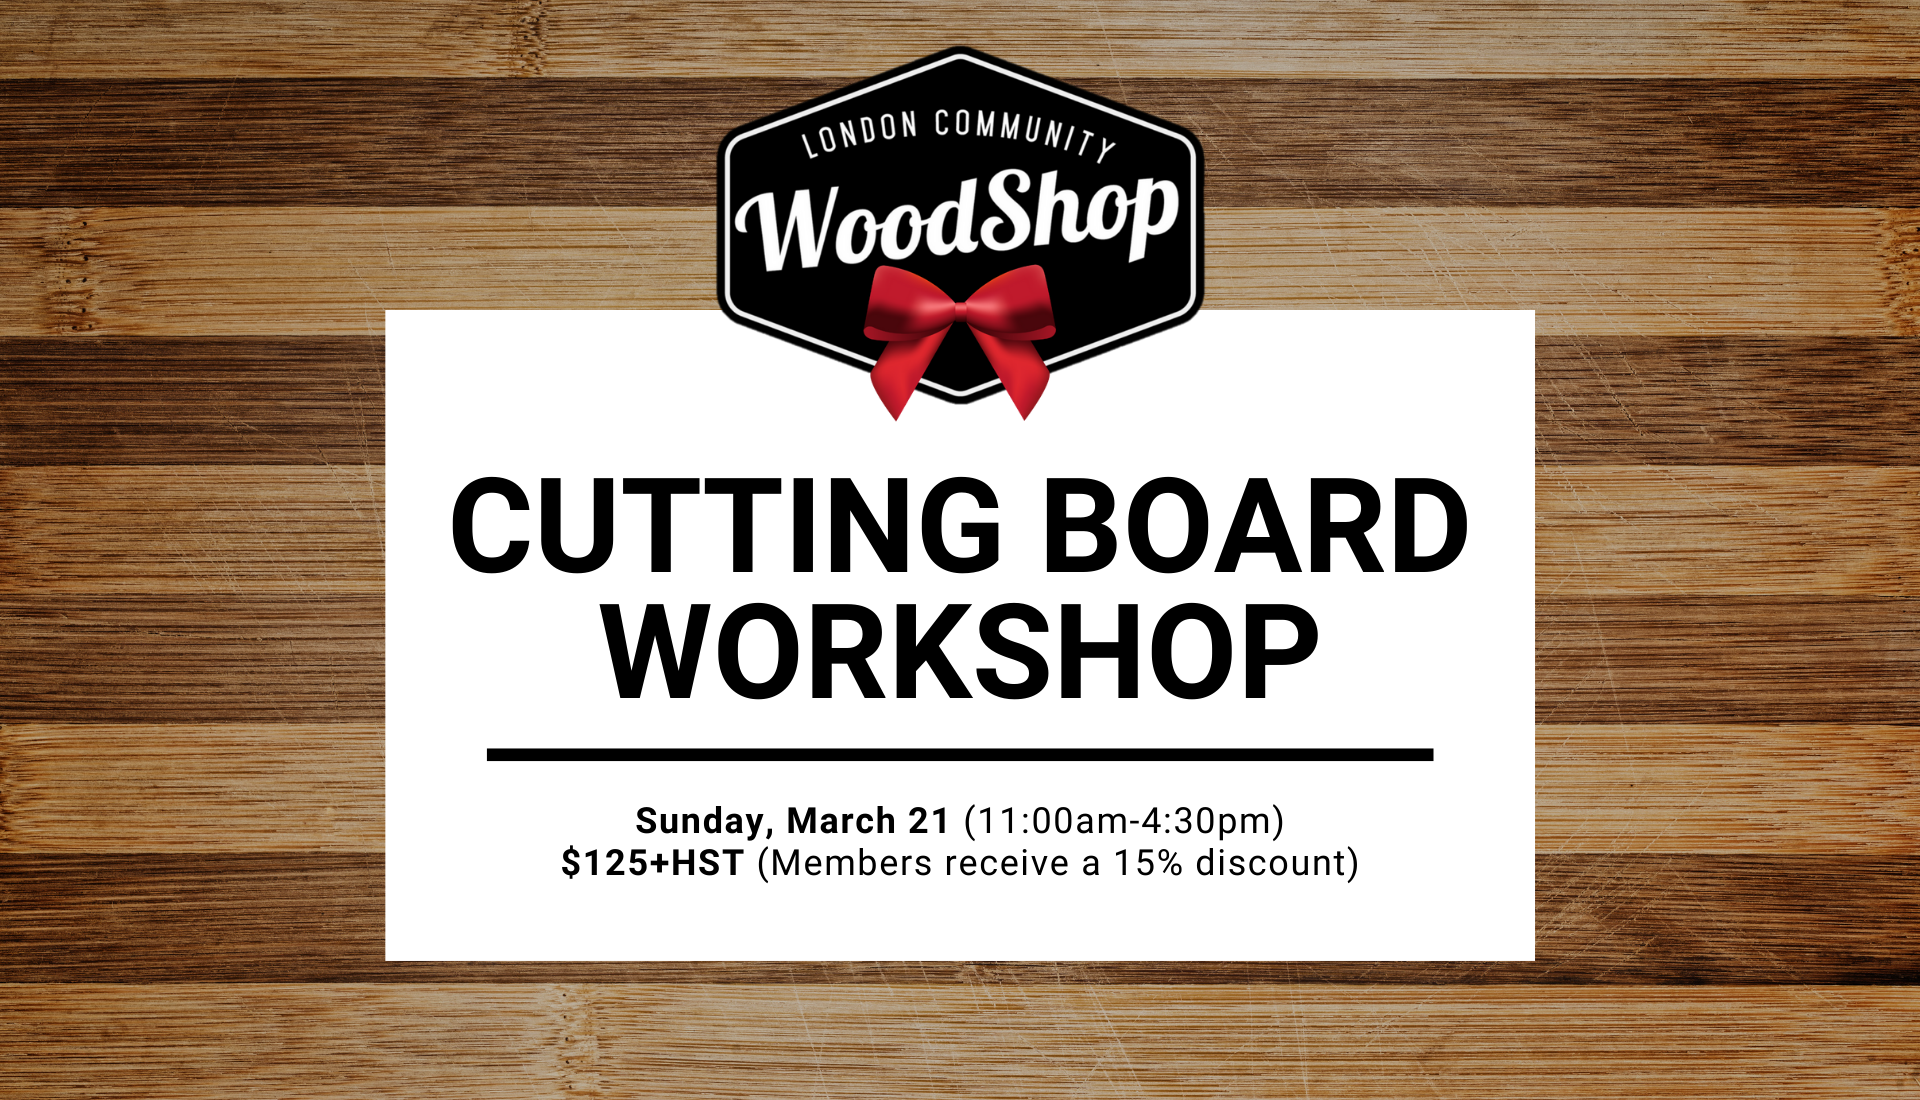 Cutting Board Workshop - Sunday, March 21